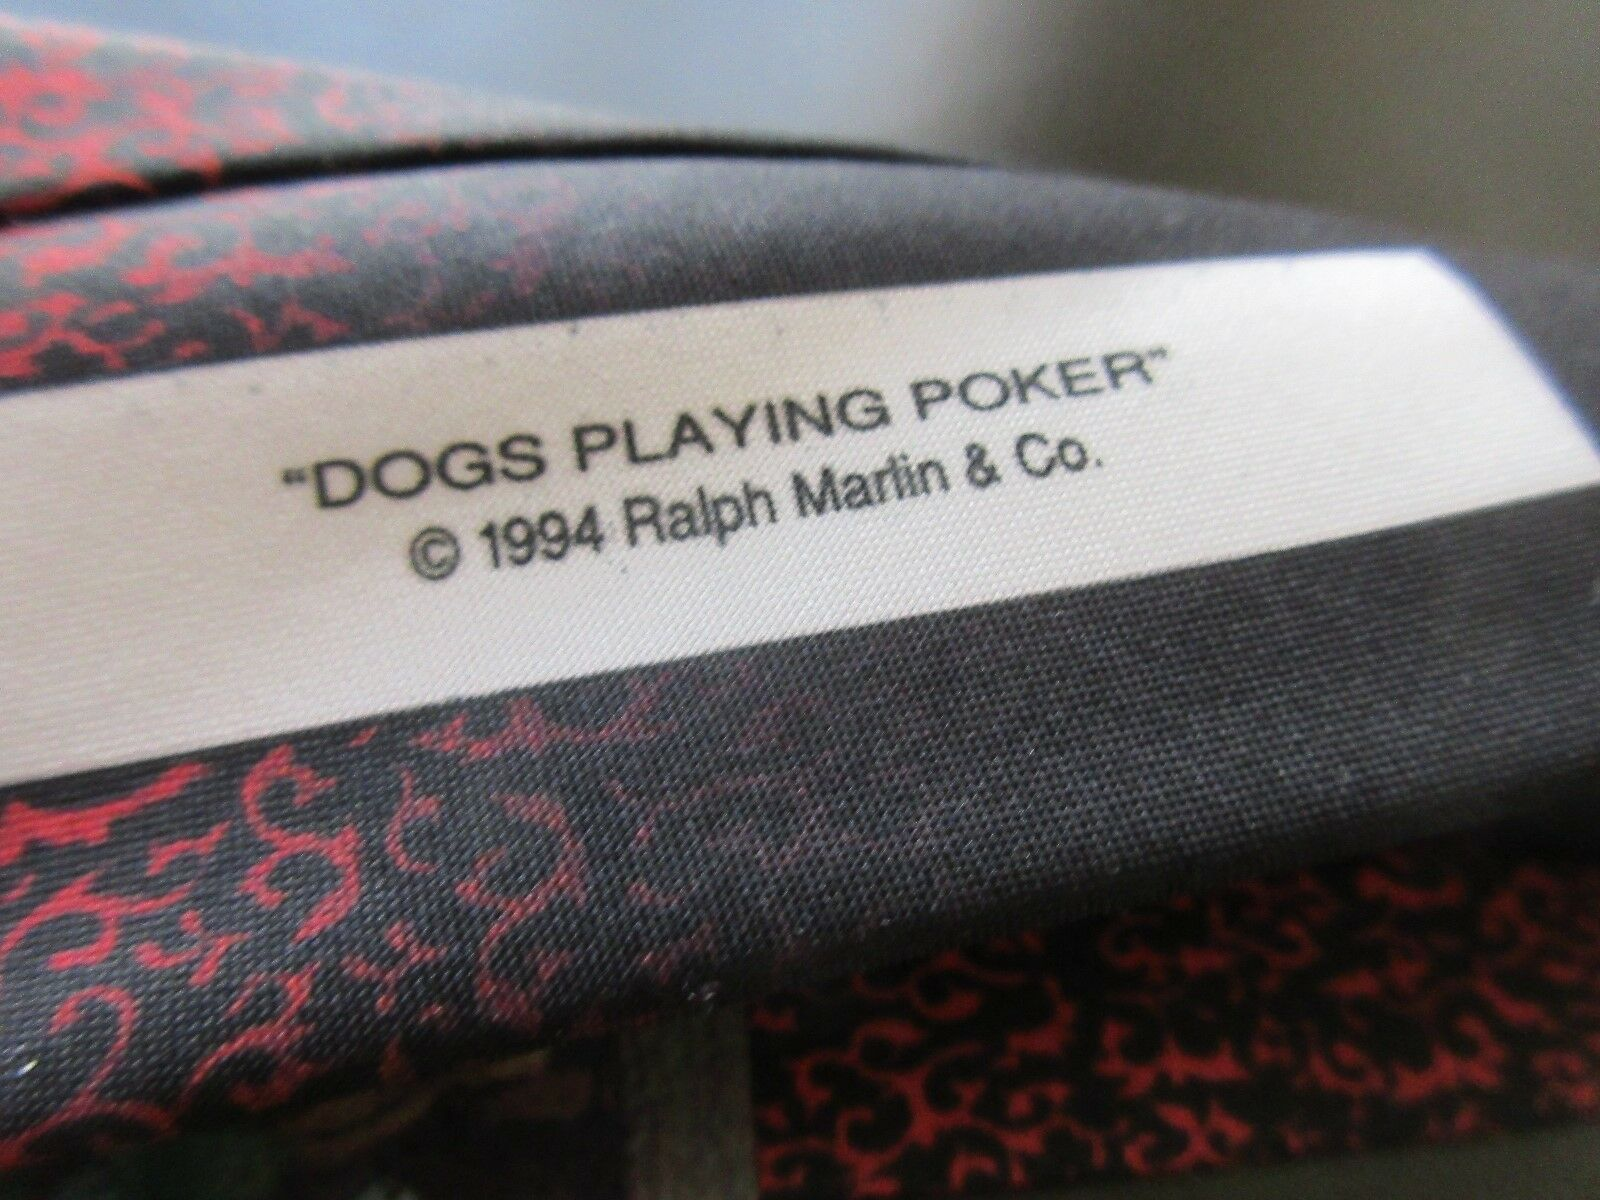 """Dogs Playing Poker"" , 1994 , Ralph Marlin & Company ,"